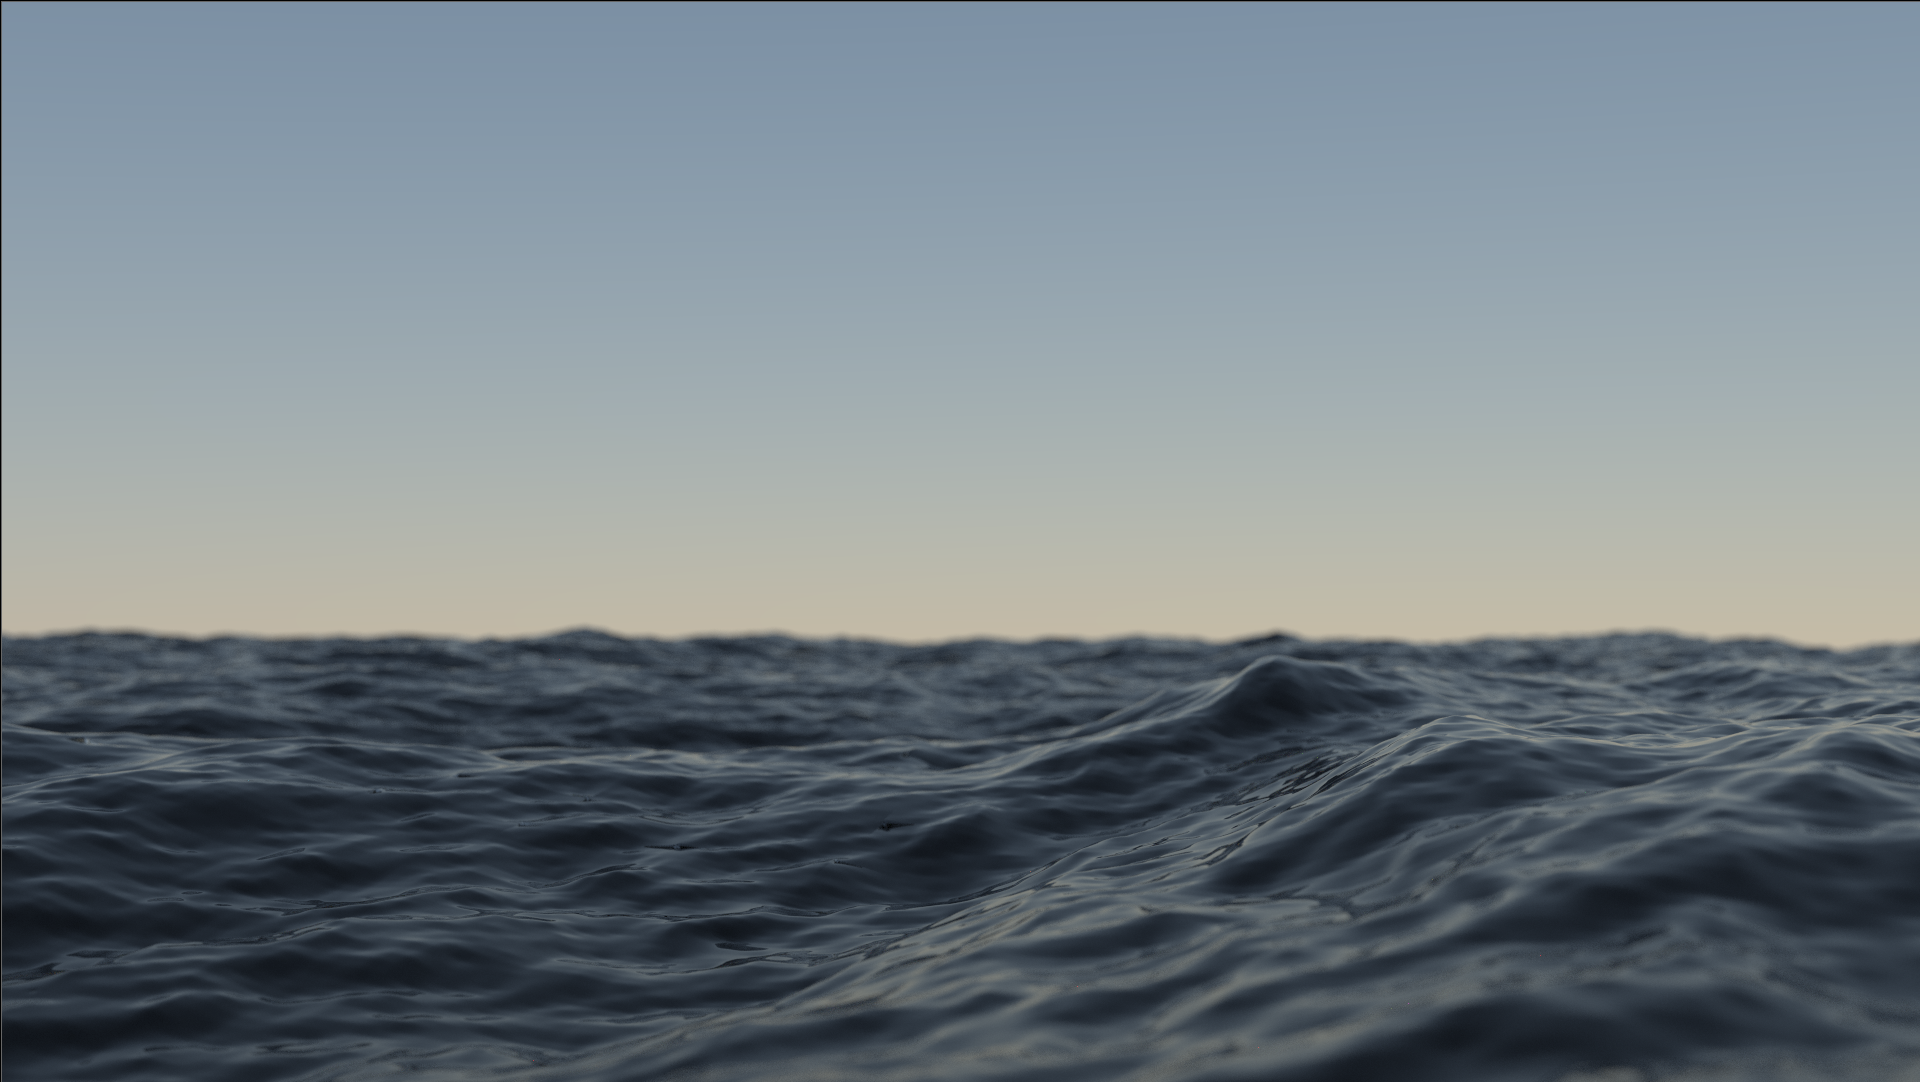 Ocean spectra with Redshift - General Houdini Questions - od|forum